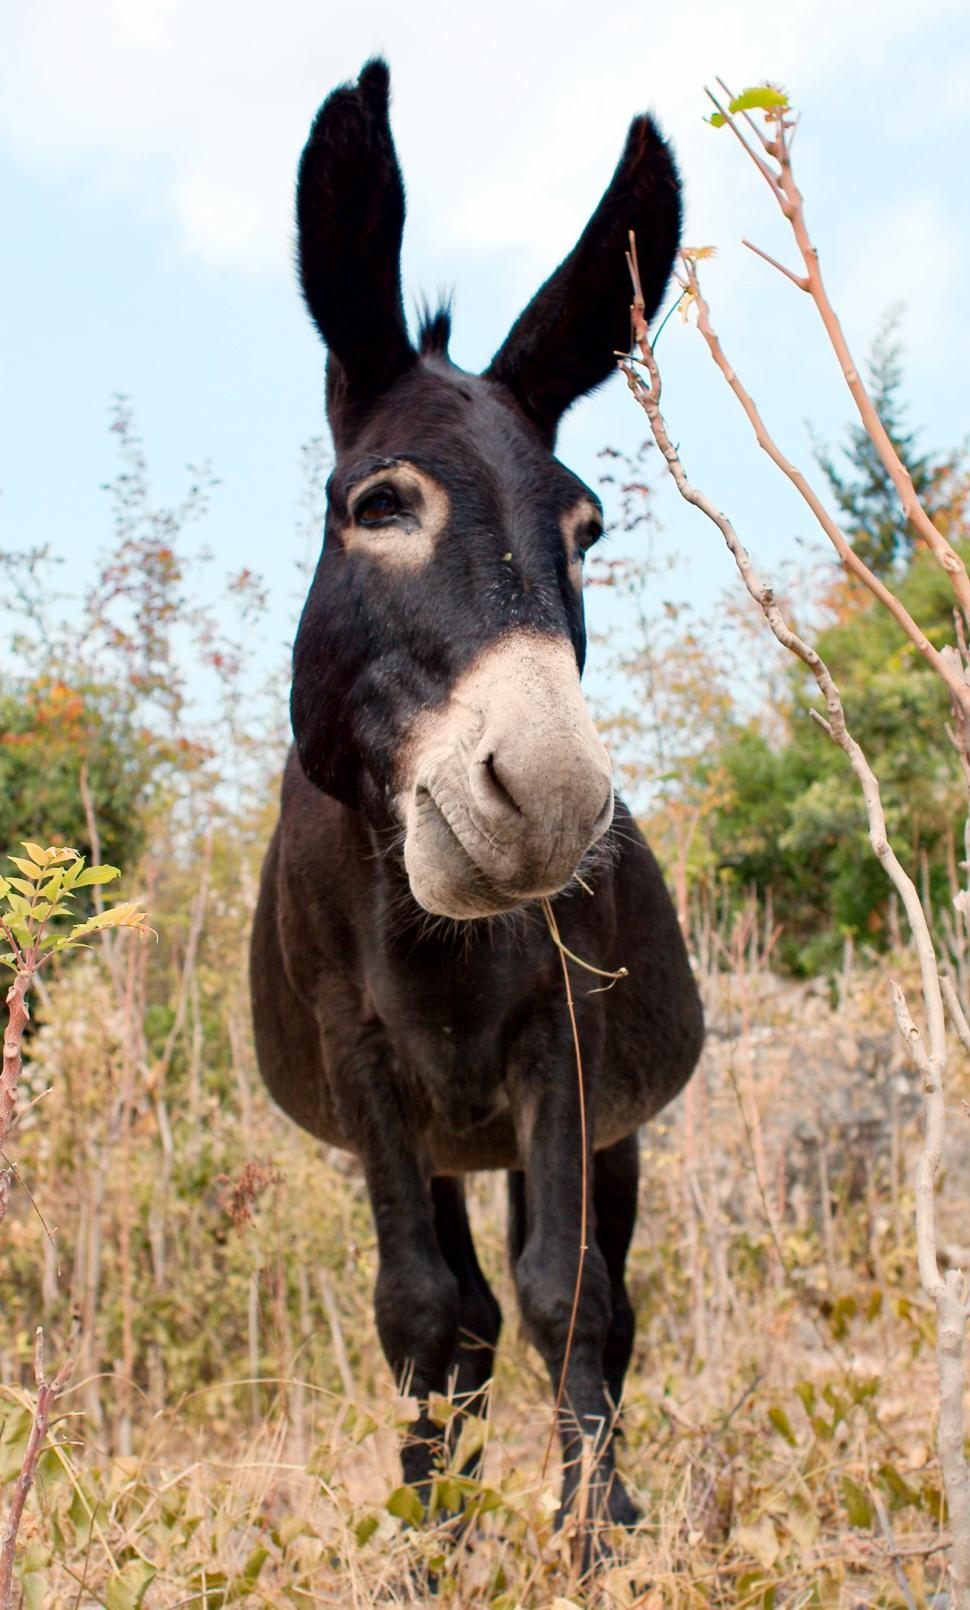 Download Free Stock Photo of The donkey